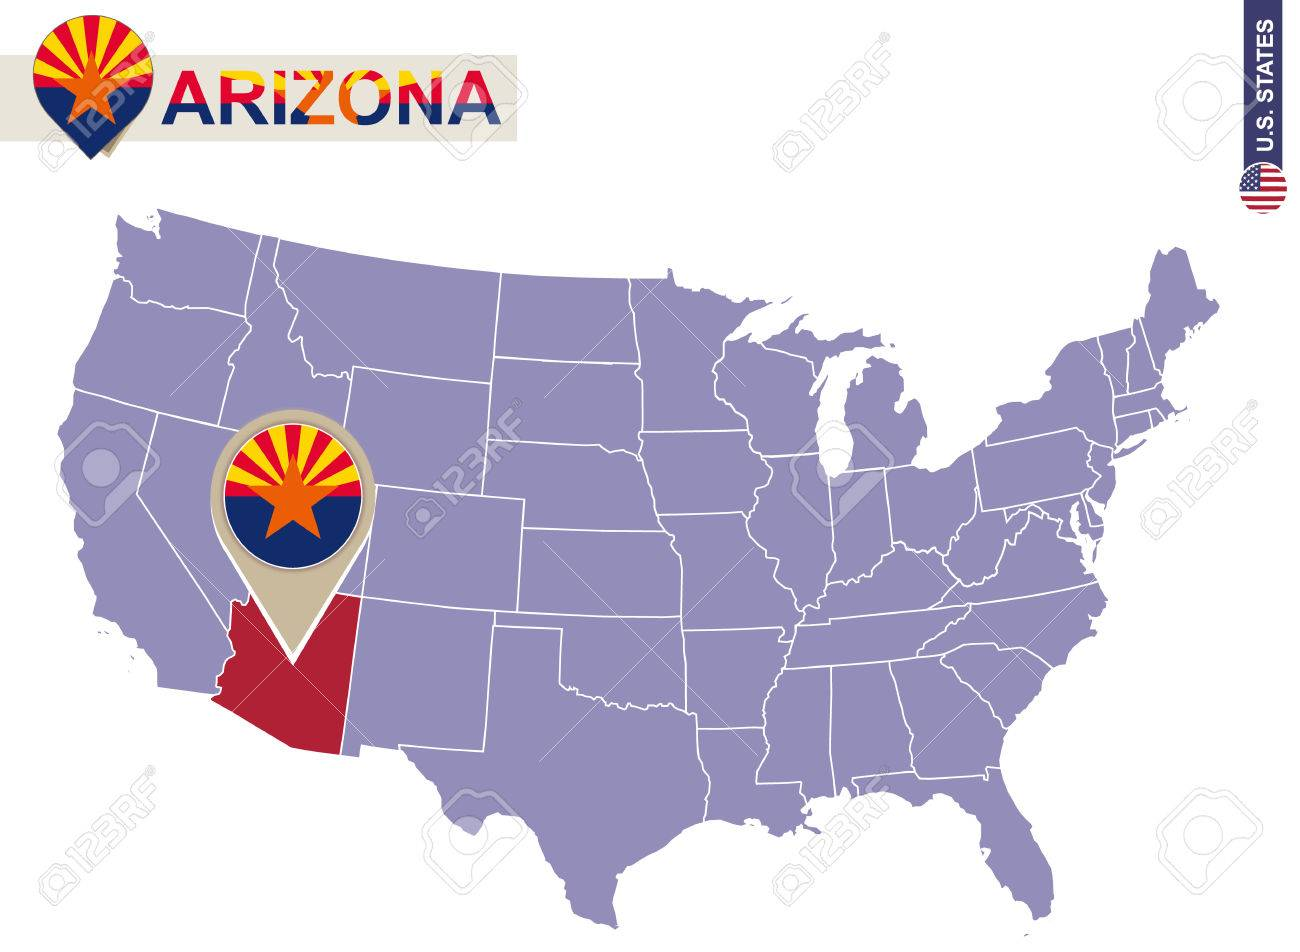 Arizona State On USA Map Arizona Flag And Map US States Royalty - Map of us by state